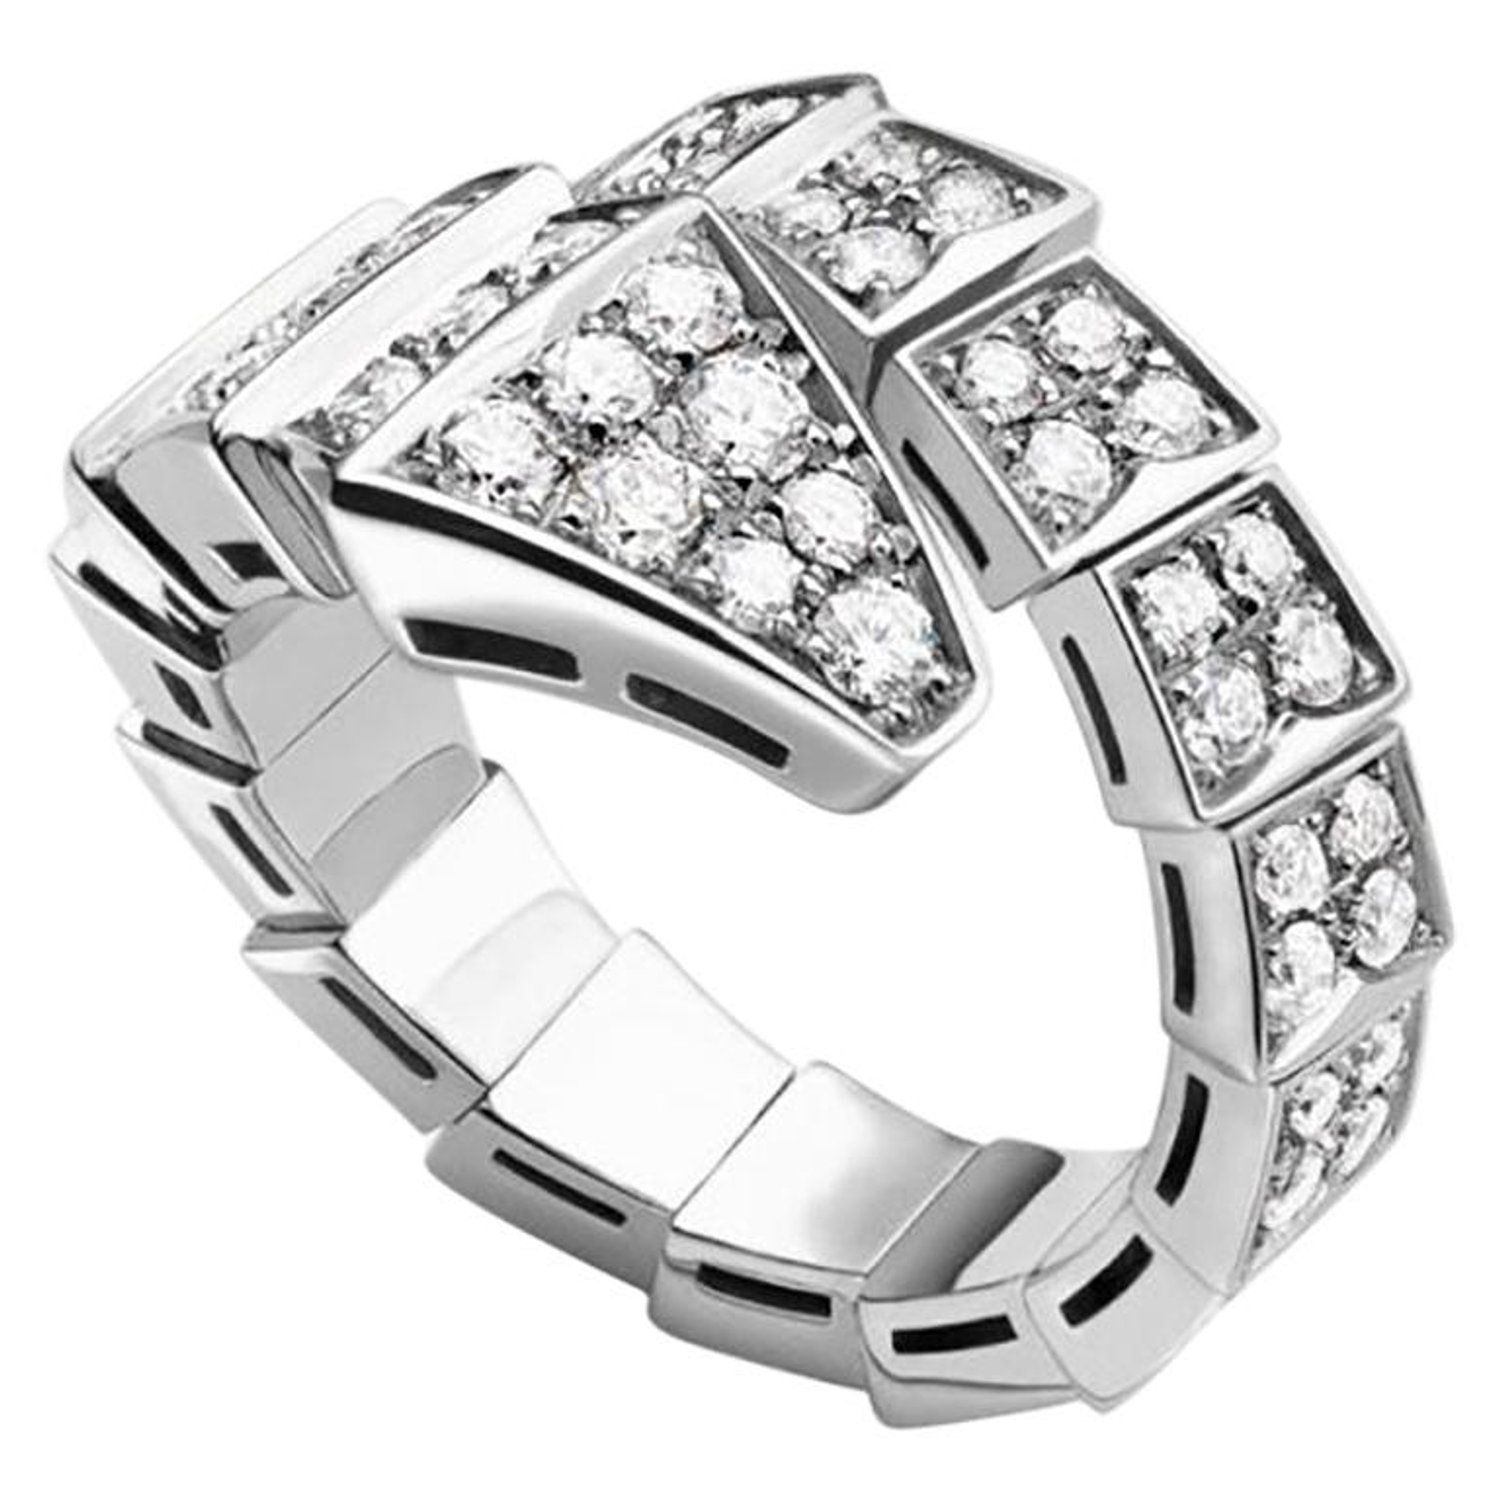 ce2fdb50b Bvlgari Serpenti One-Coil Ring in 18 Karat White Gold Set with Full Pave  Diamond